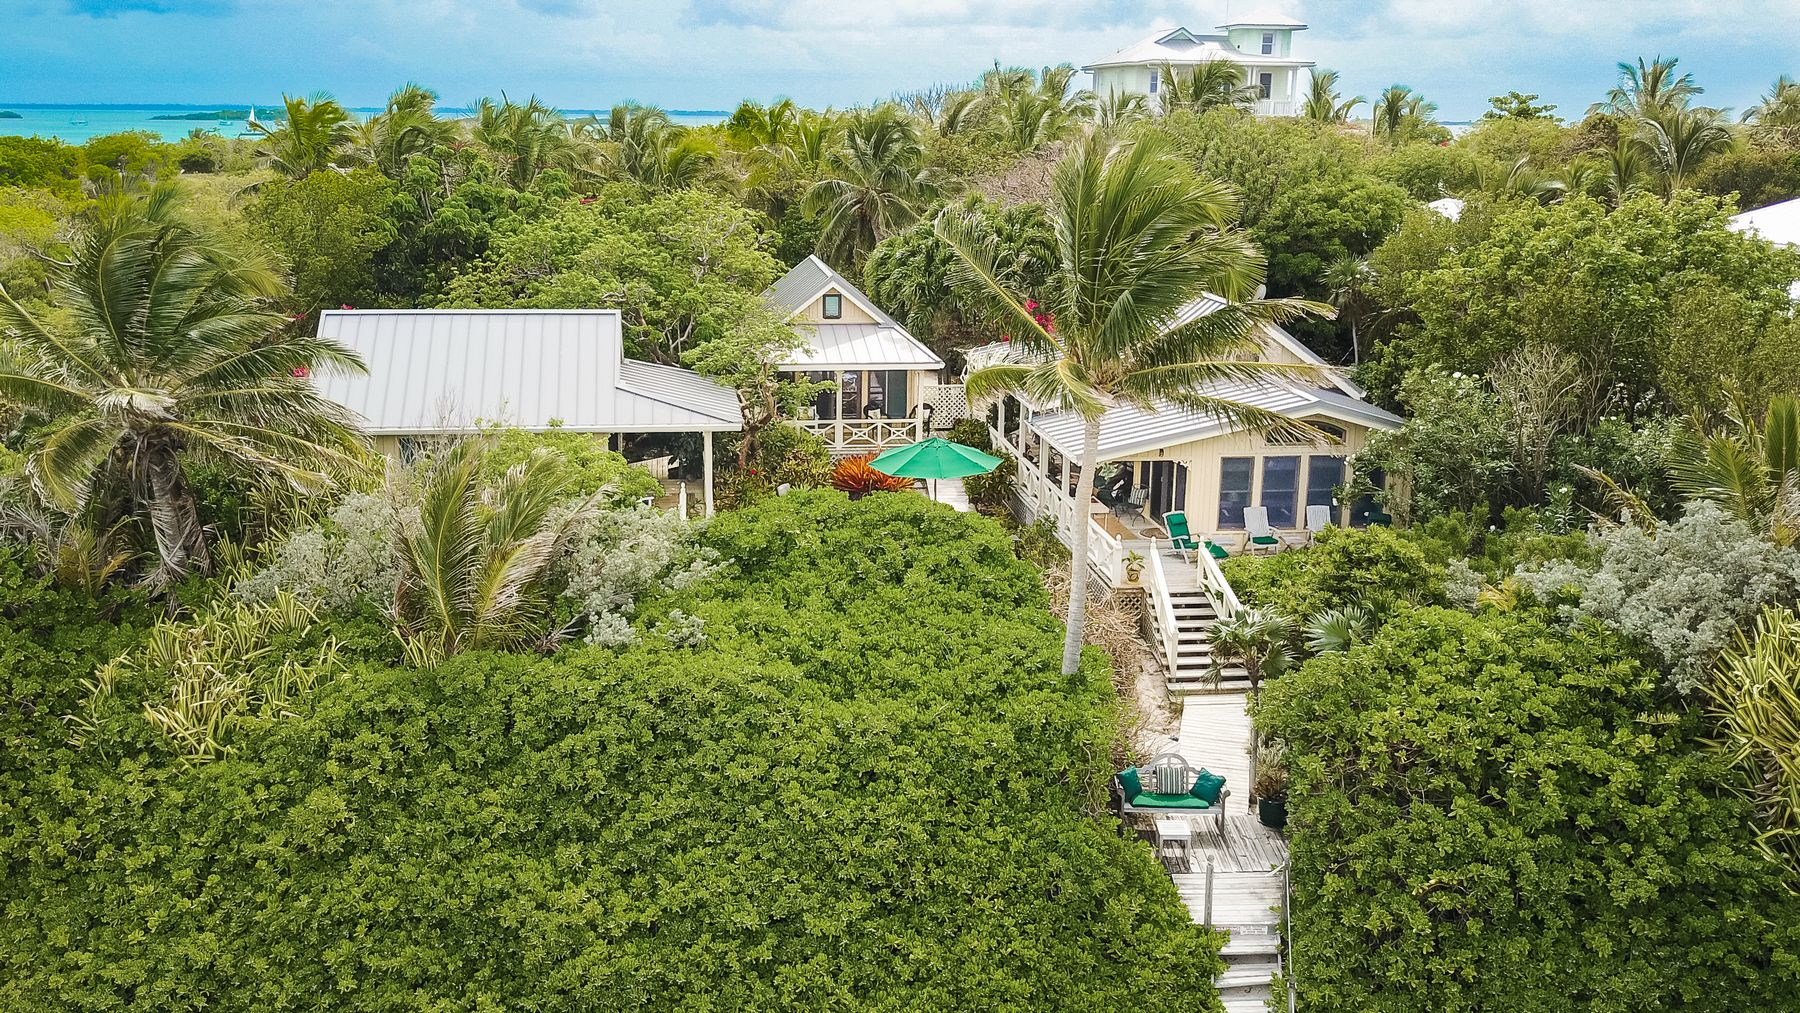 Single Family Home for Sale at Gumelemi Ridge Other Bahamas, Other Areas In The Bahamas Bahamas